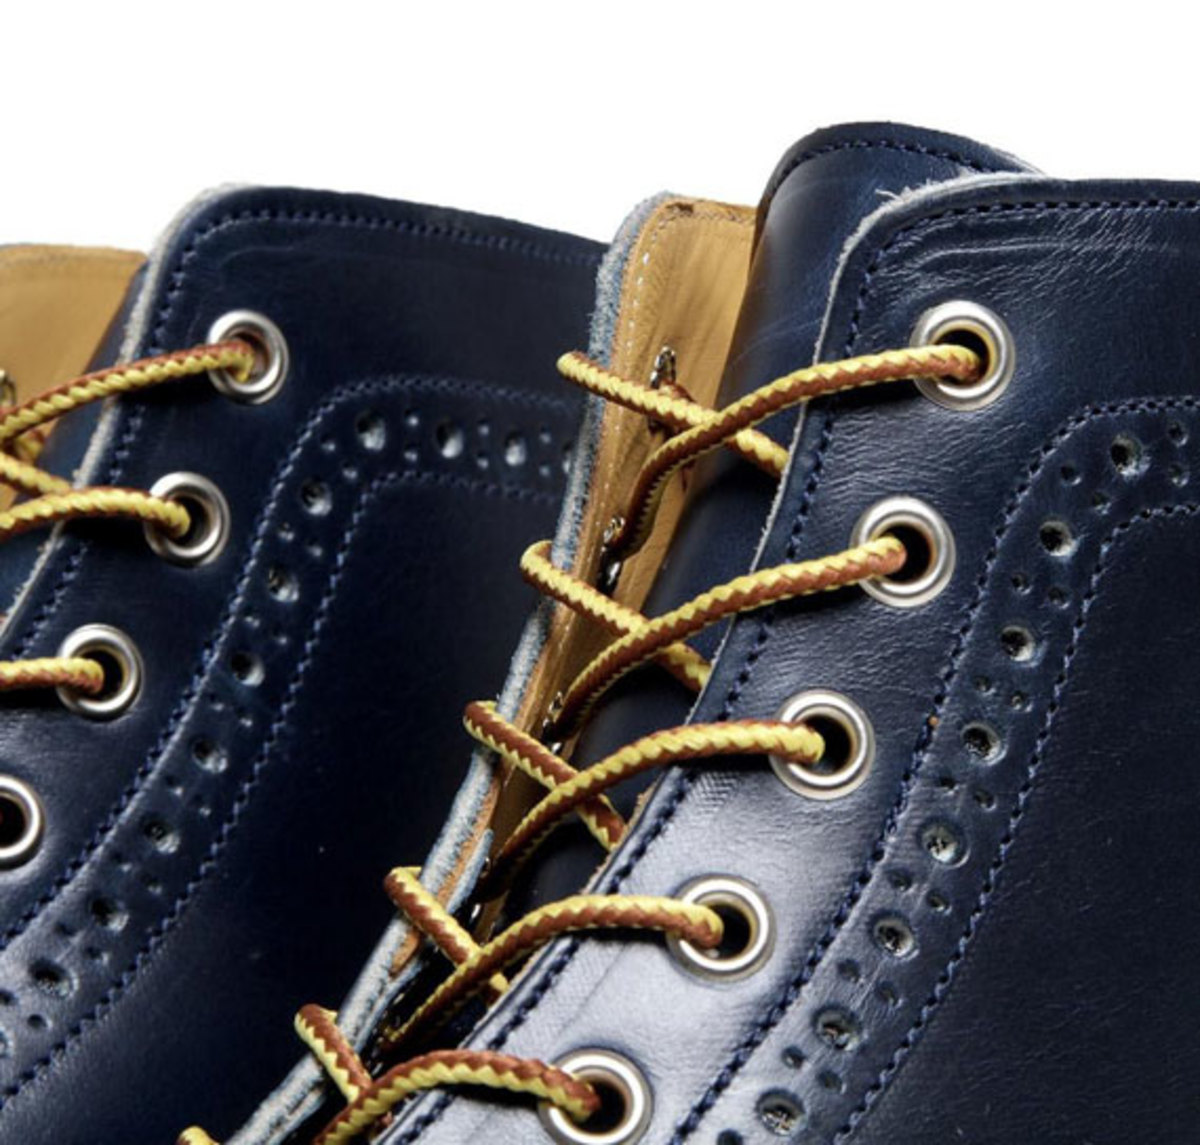 trickers-for-end-stow-brogue-derby-boot-05